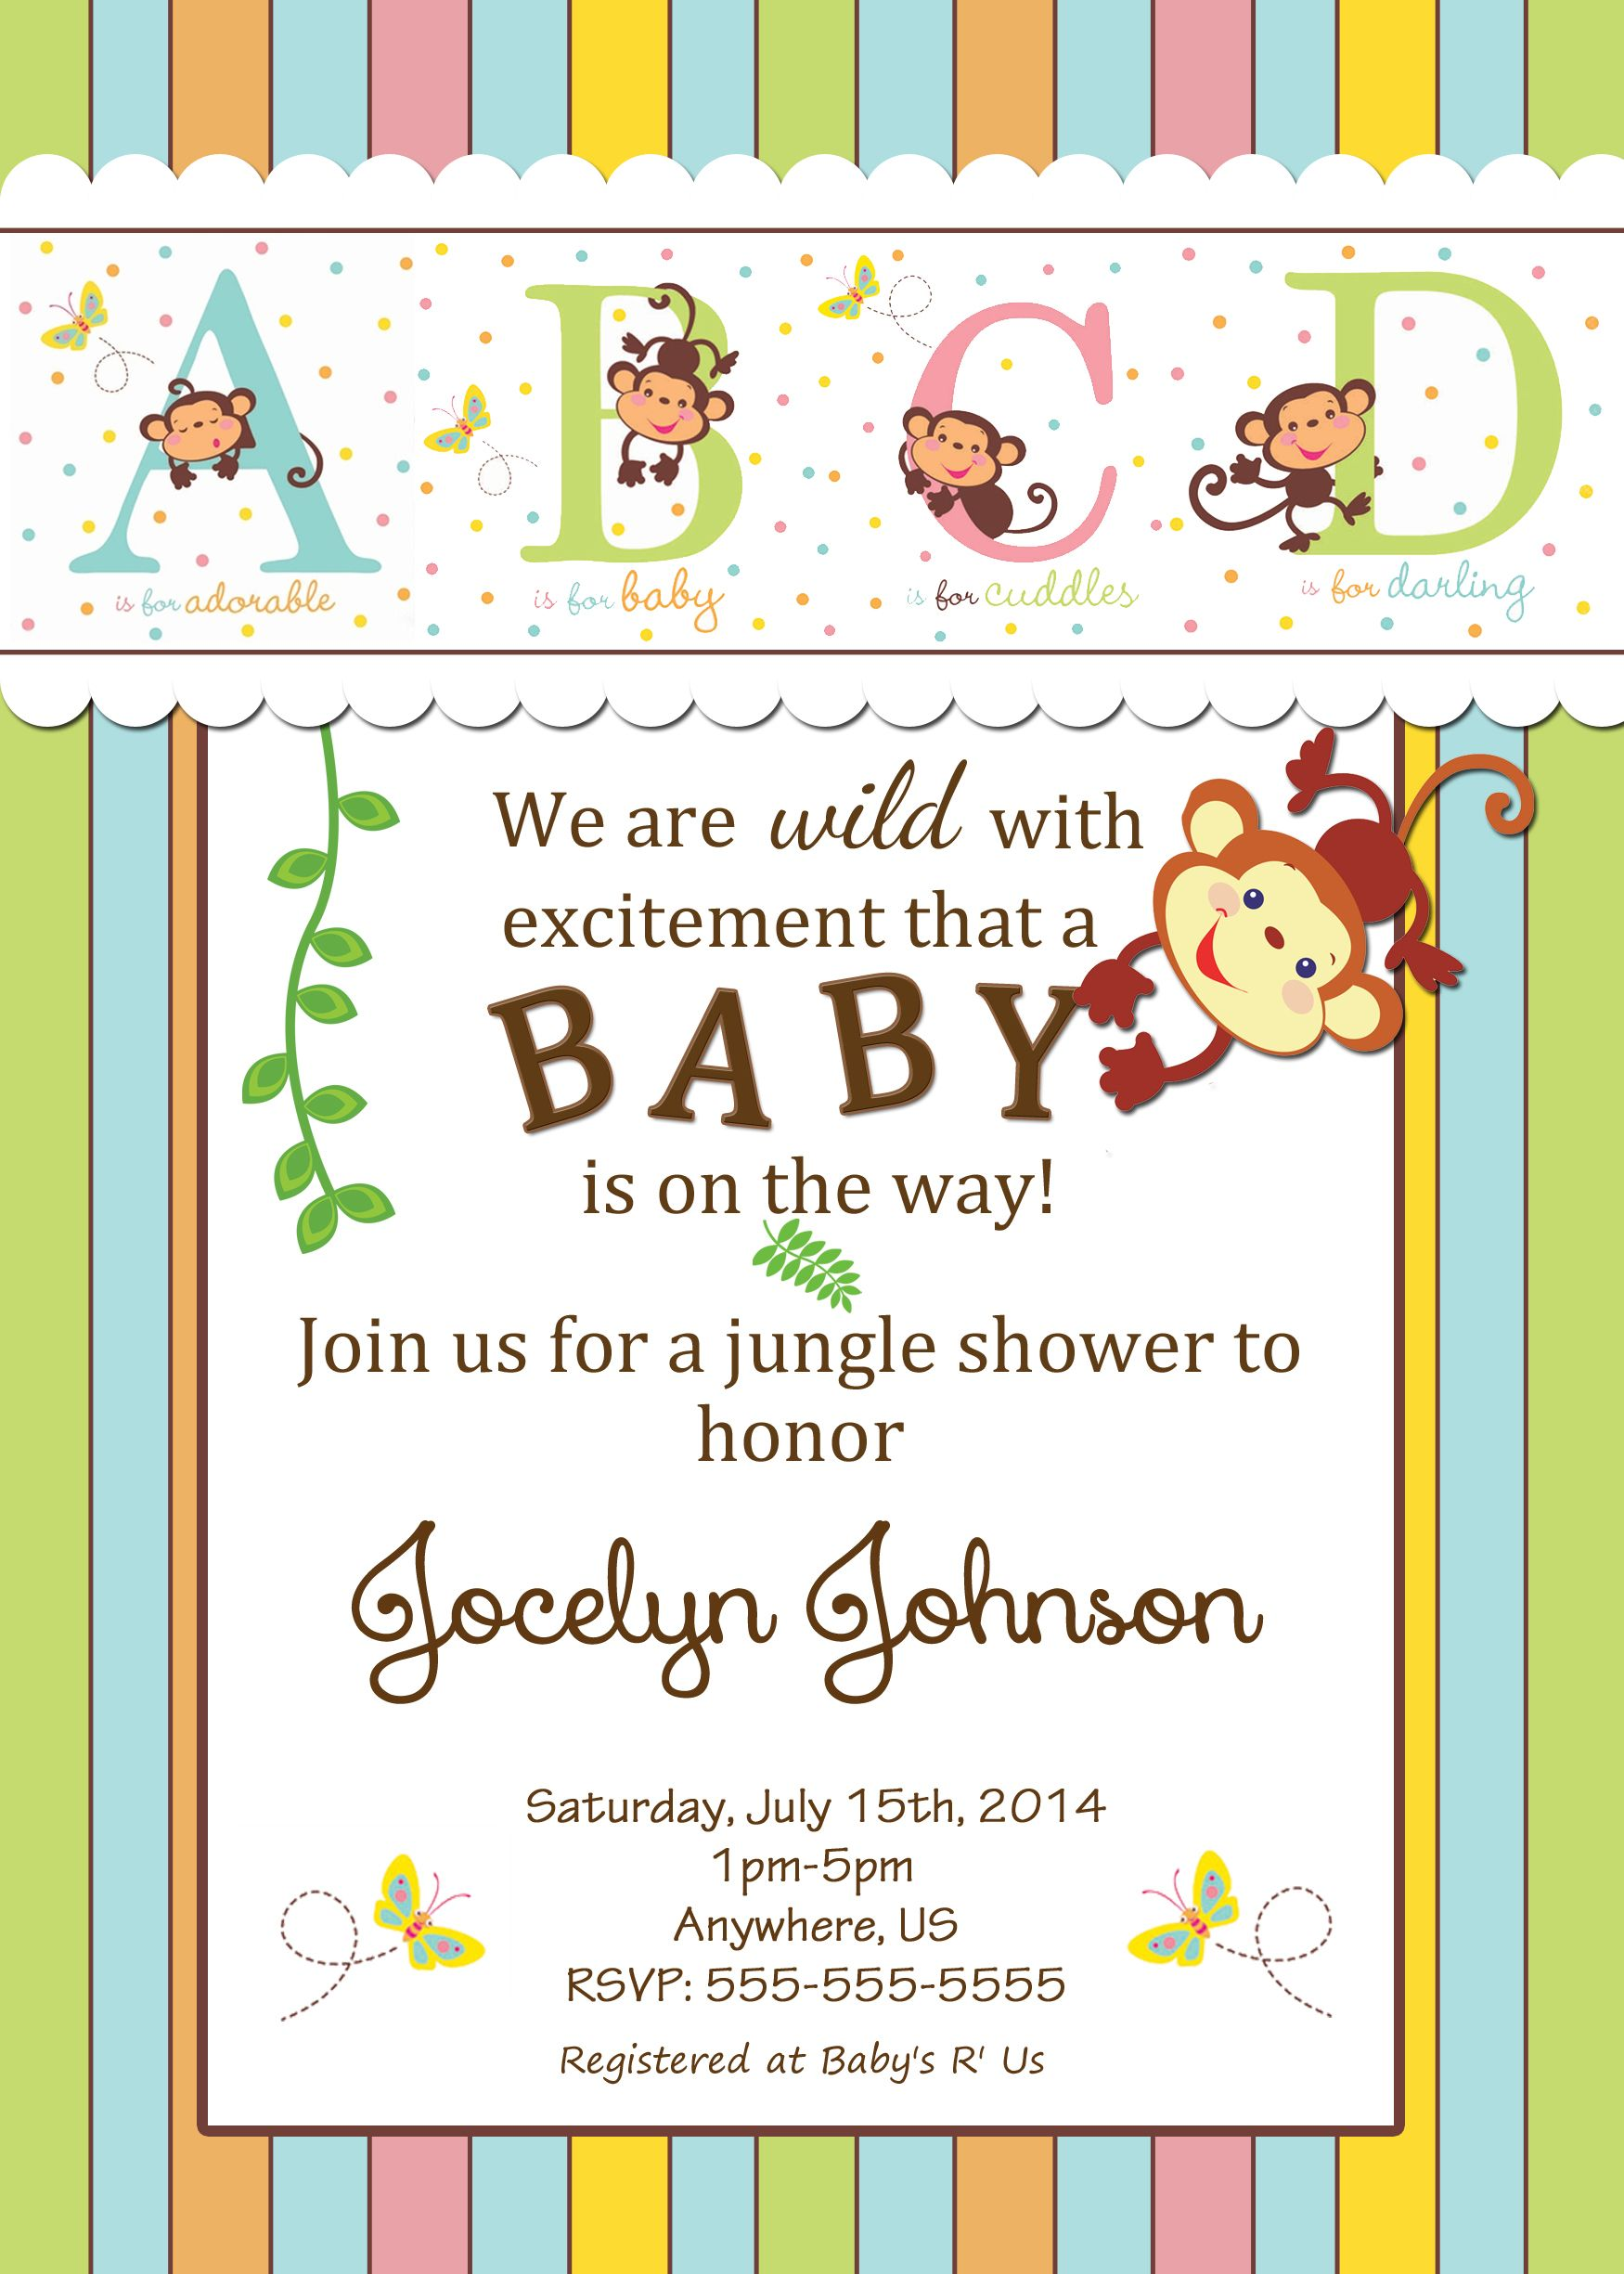 appearance megans baby ineutral neutral on safari invitations special shower ideas invitation gender for gend unknown design faee simple